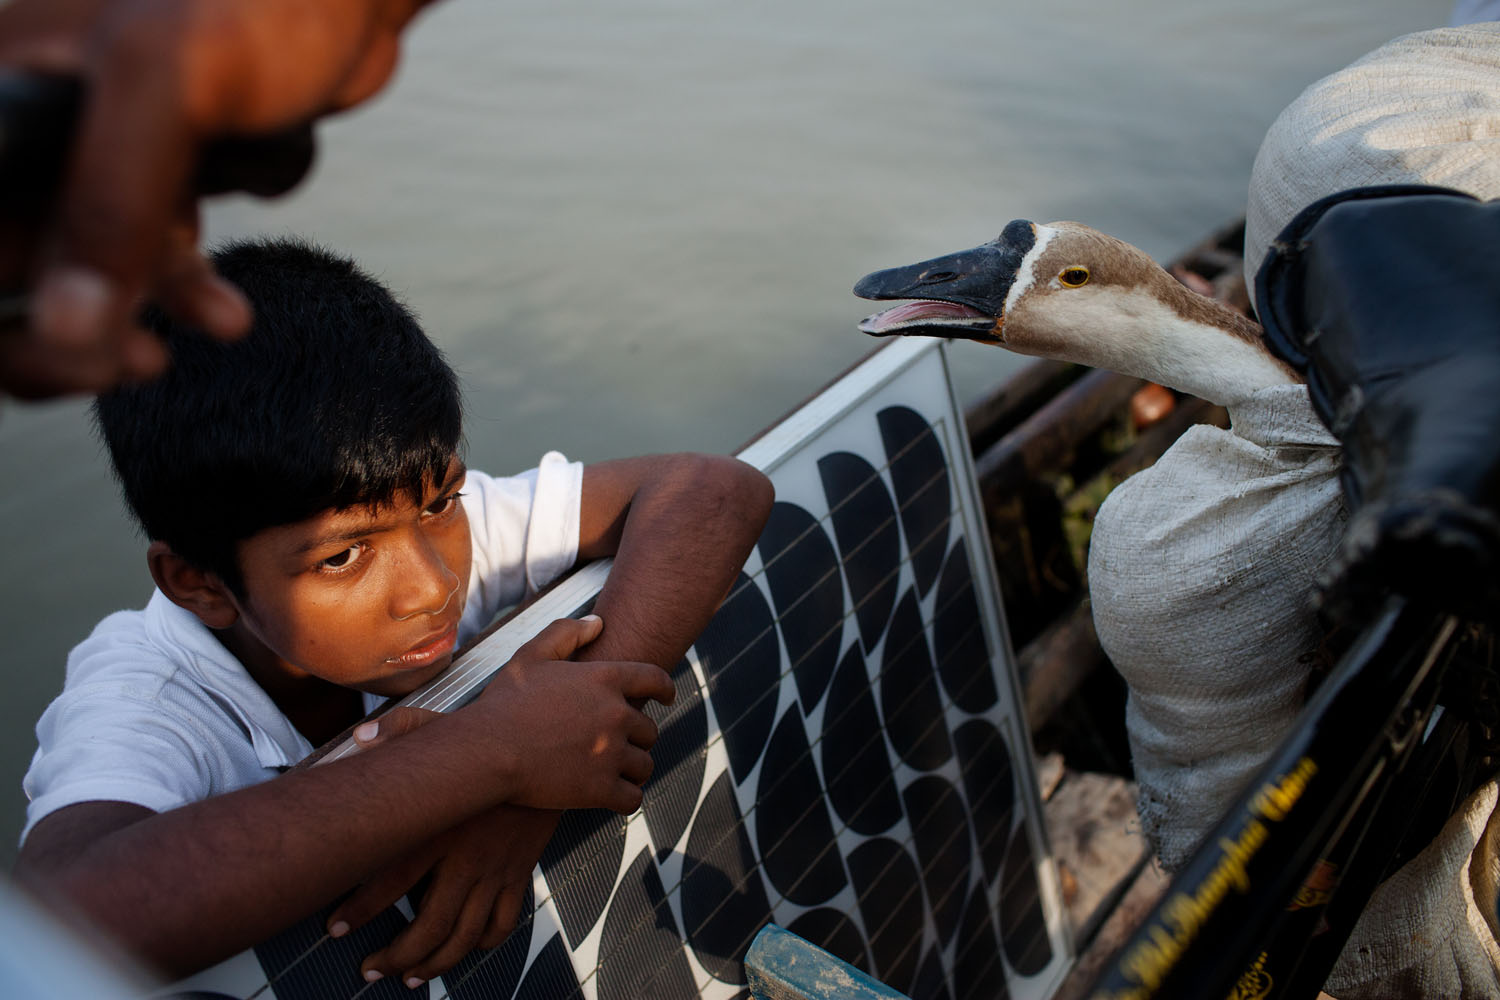 After the hurricane Aila hit the coast of Bangladesh in 2009, thousands of people moved their homes to safer areas.